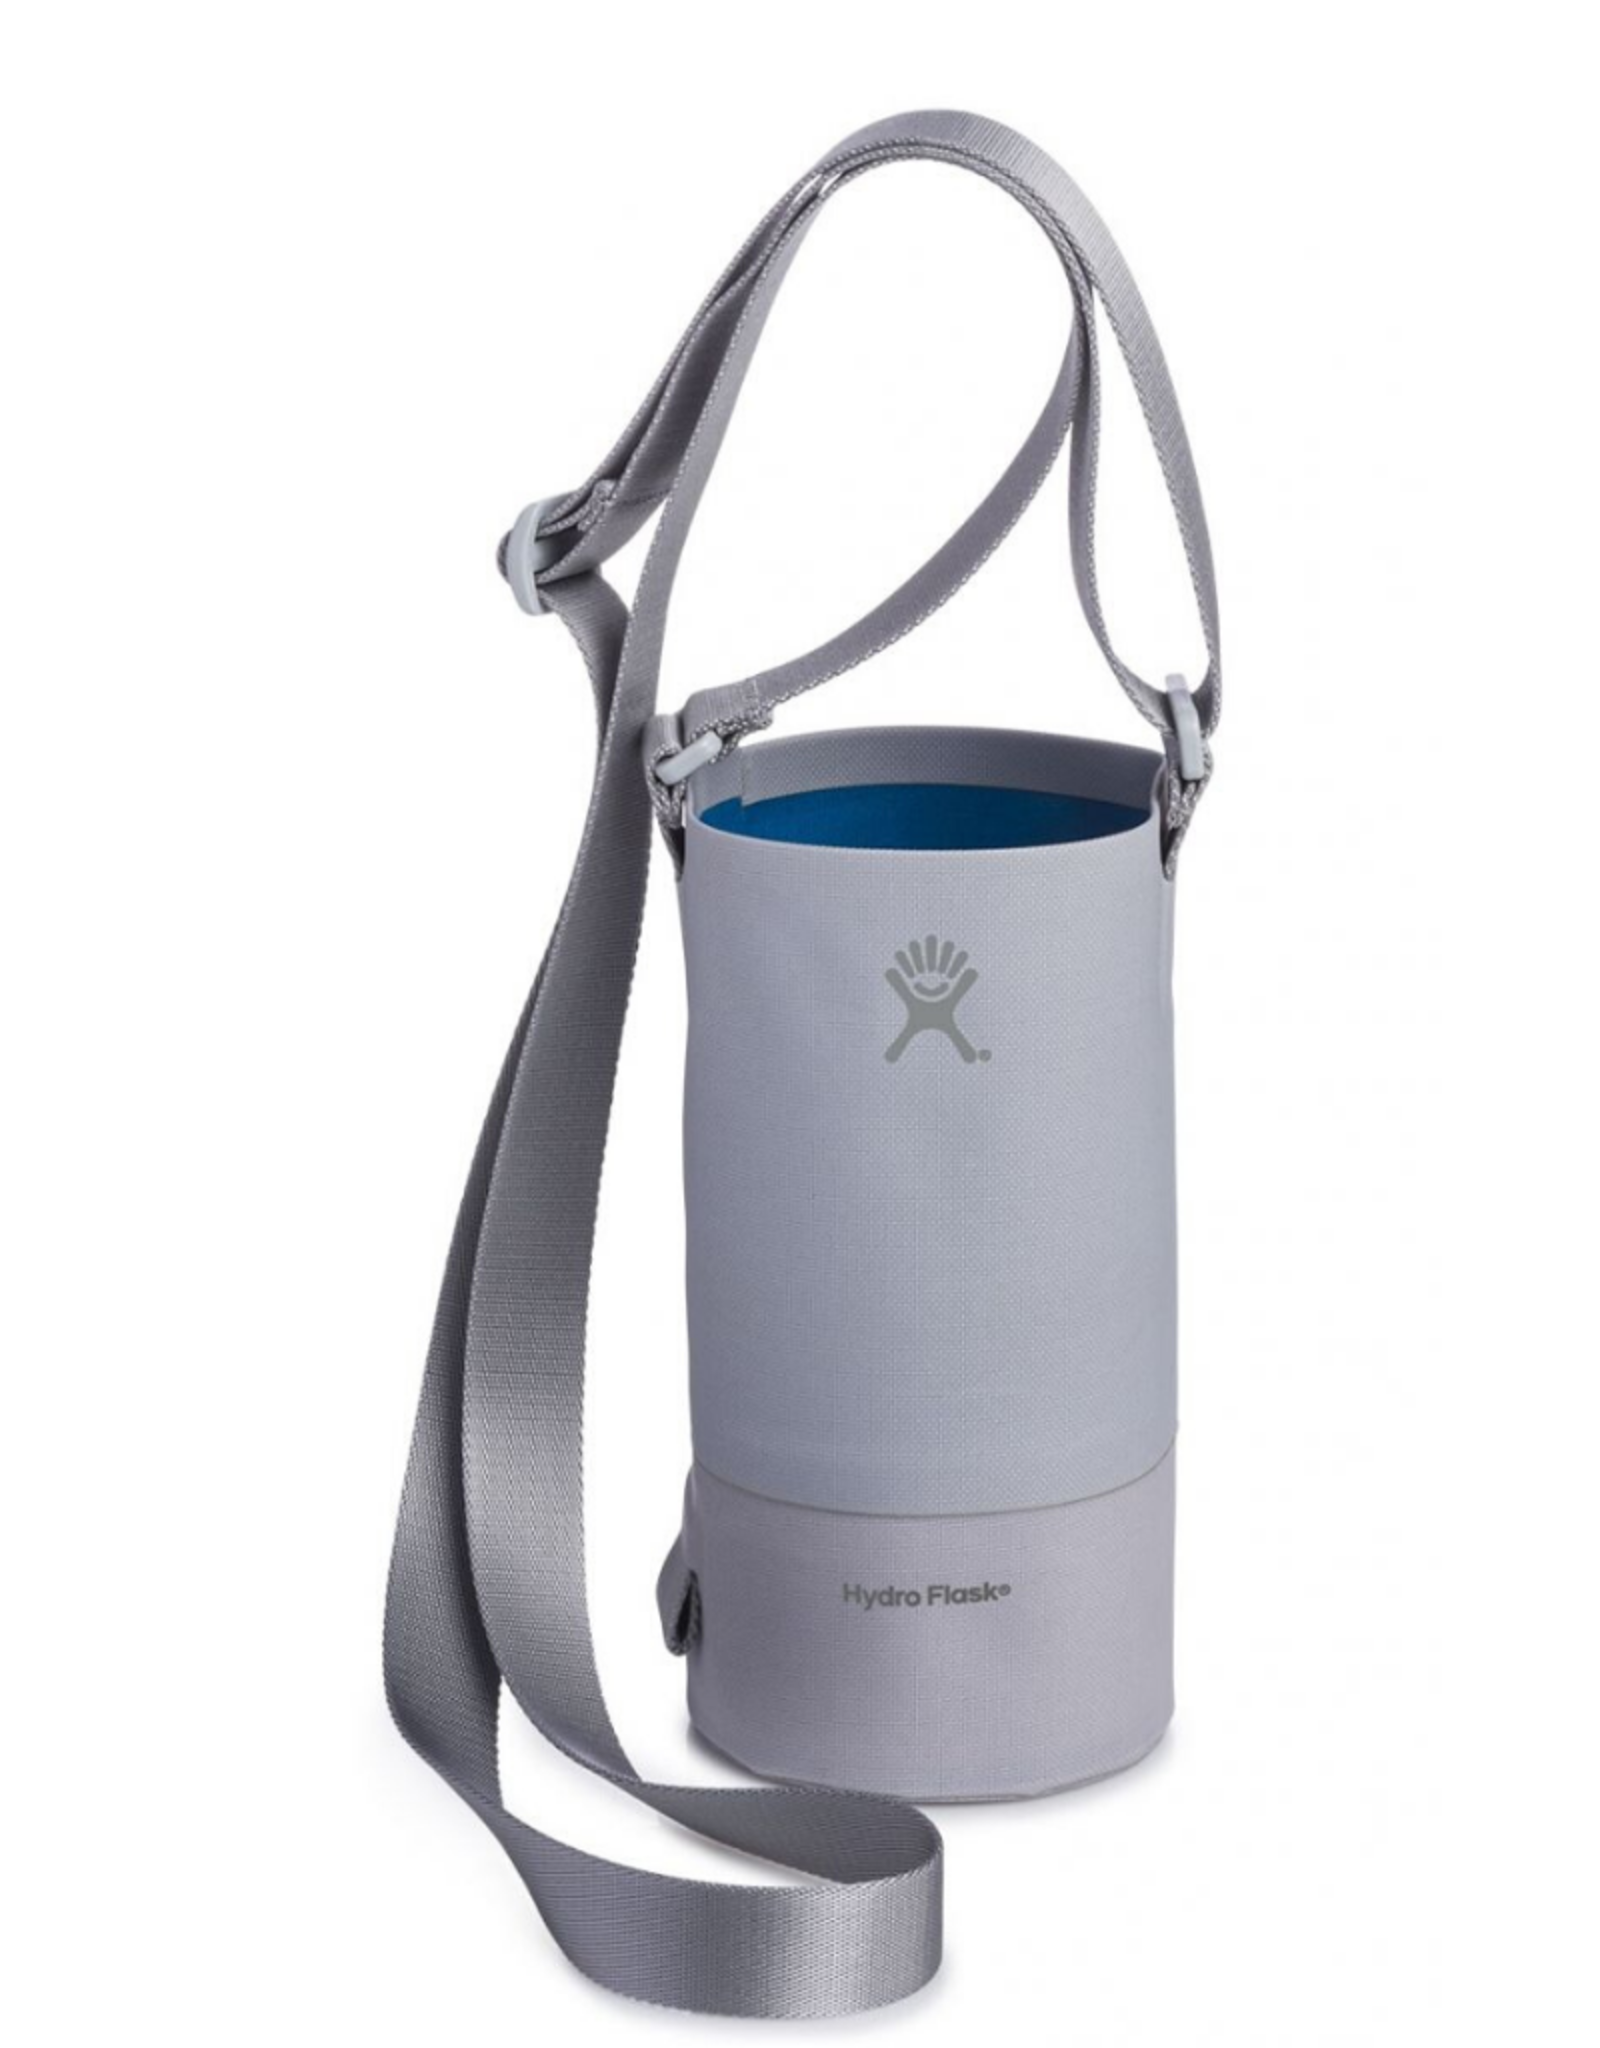 Hydro Flask Hydro Flask Tag Along